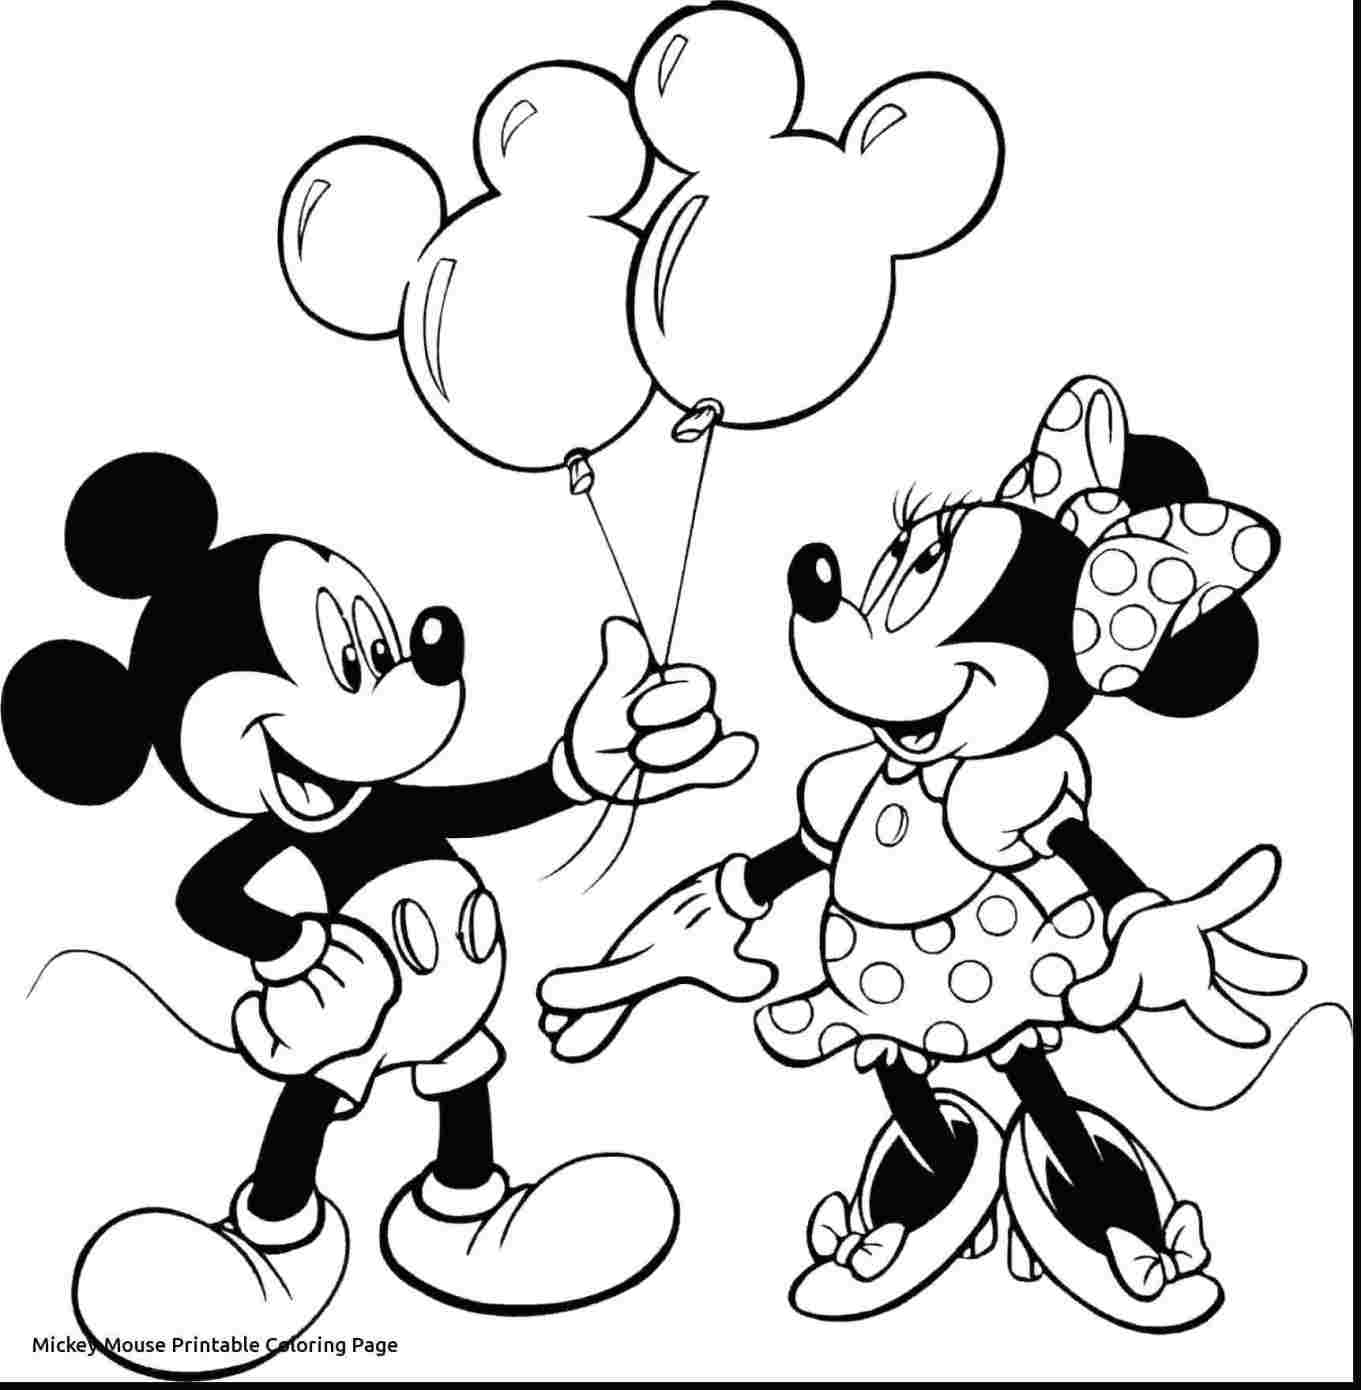 drawing minnie mouse face image result for how to draw minnie mouse face for kids face minnie drawing mouse